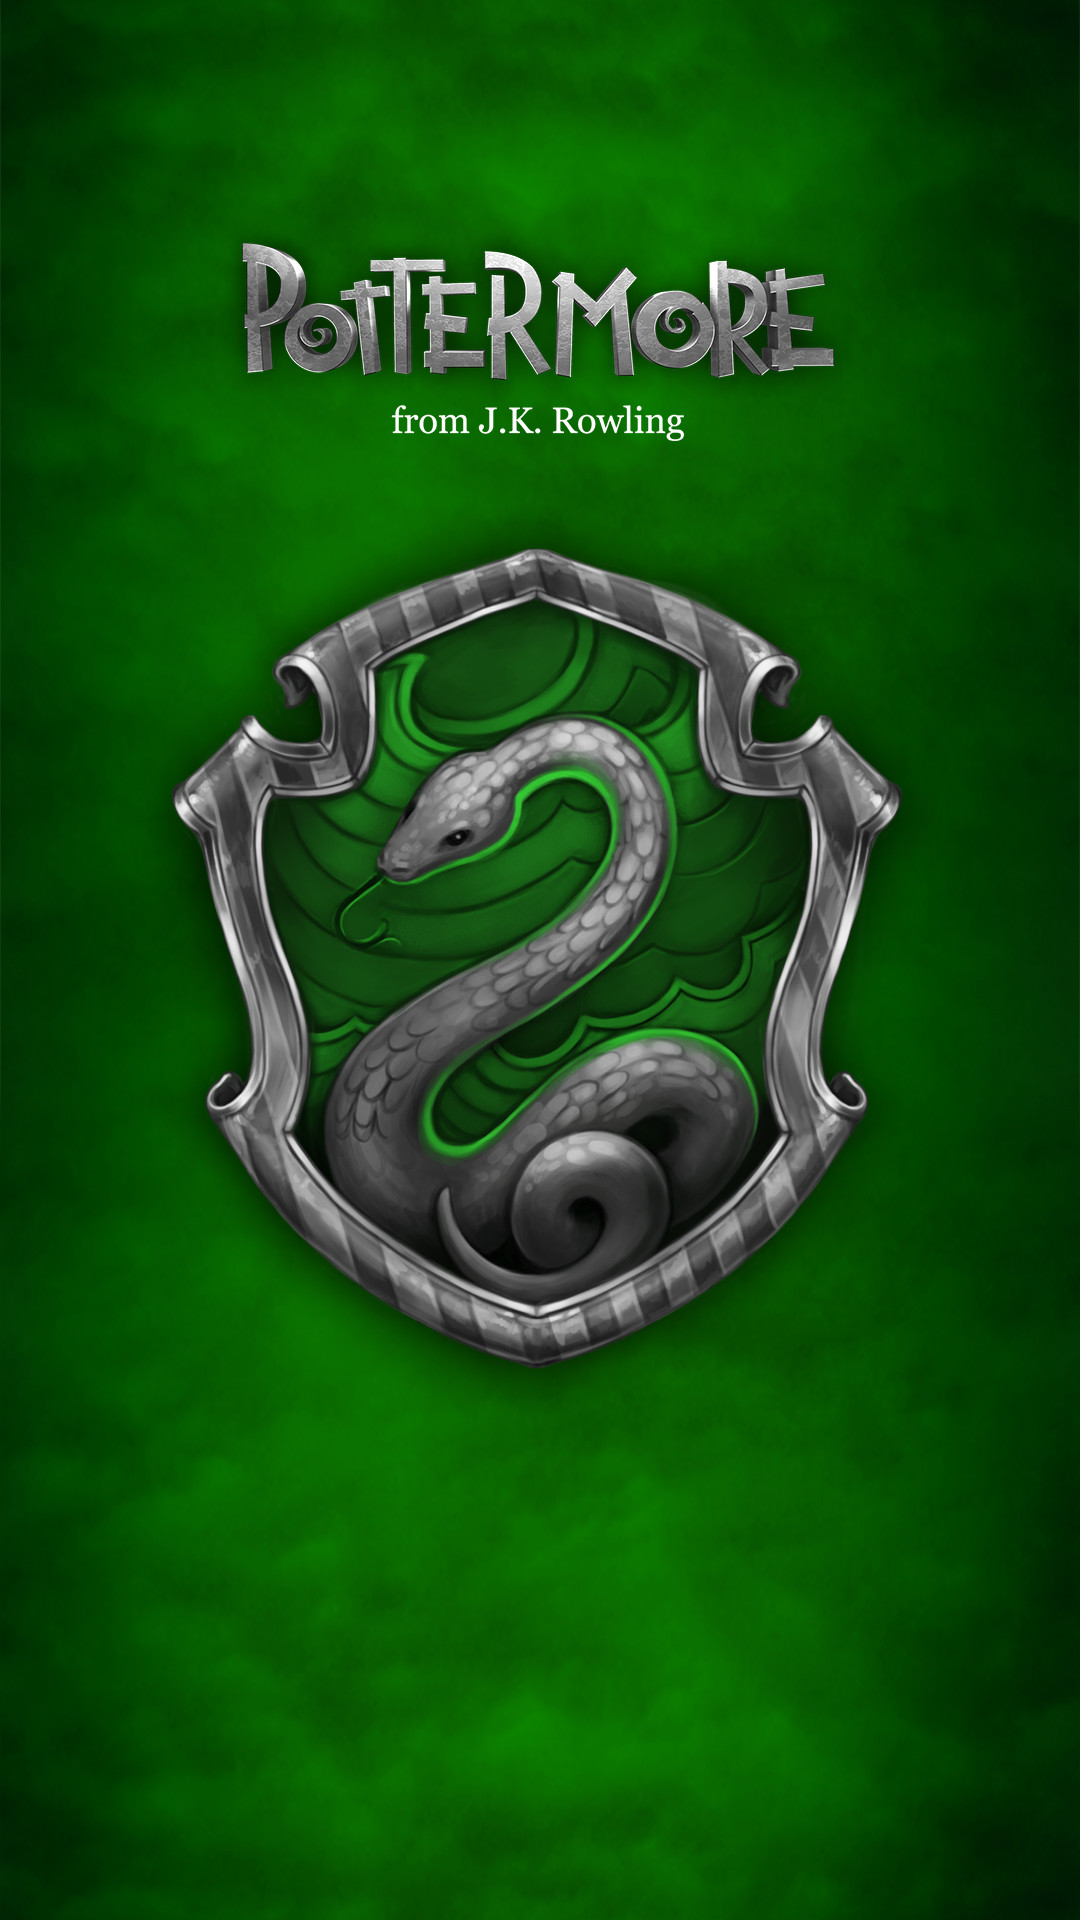 Harry Potter Quote Iphone Wallpaper Slytherin Iphone Wallpaper 39 Images